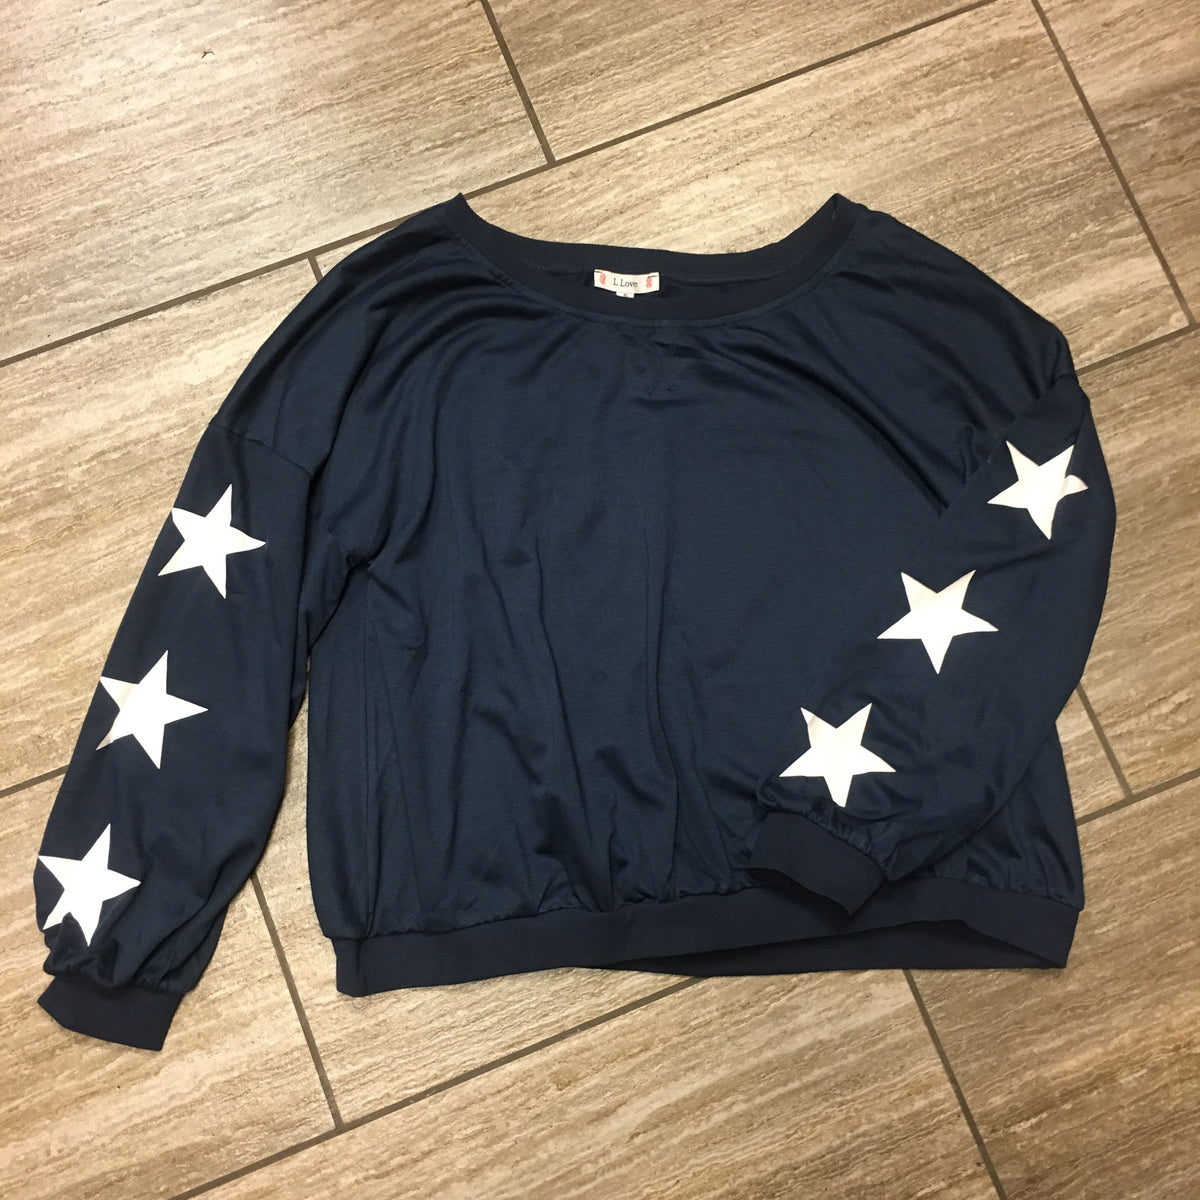 Blue Relax Fit LS Top w/Star Print Sleeve